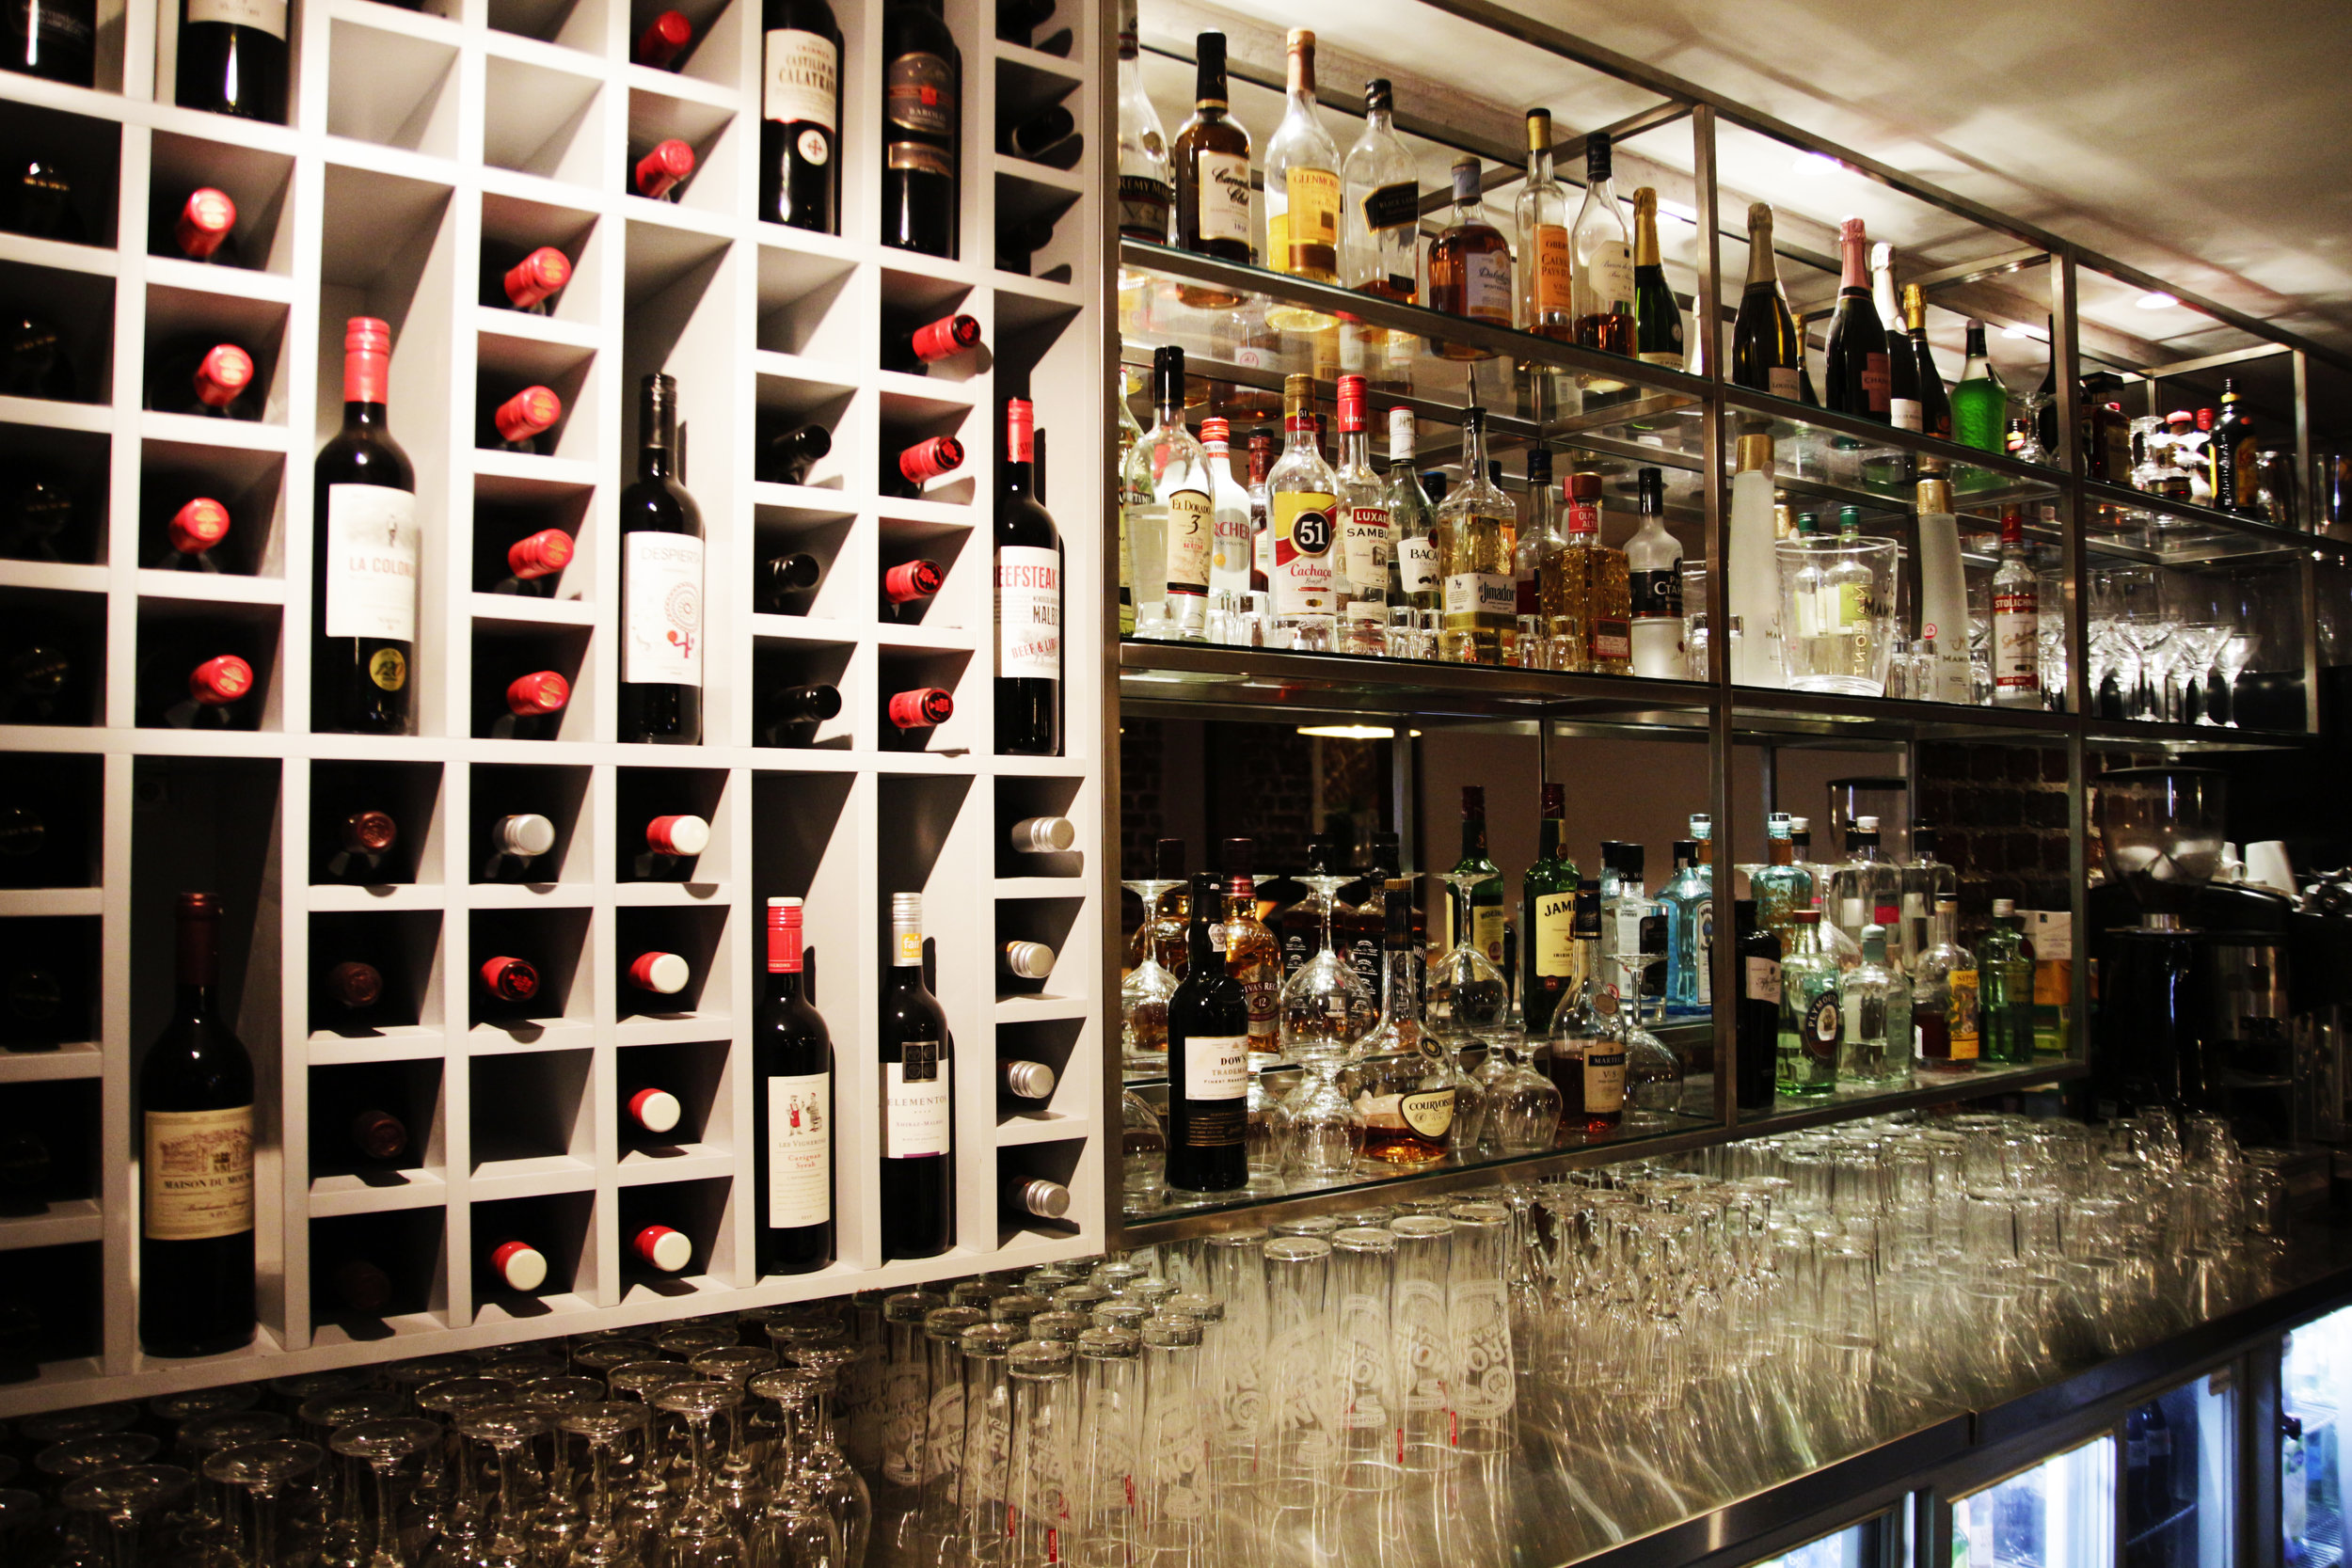 We have an extensive selection of beers, wines and spirits on offer